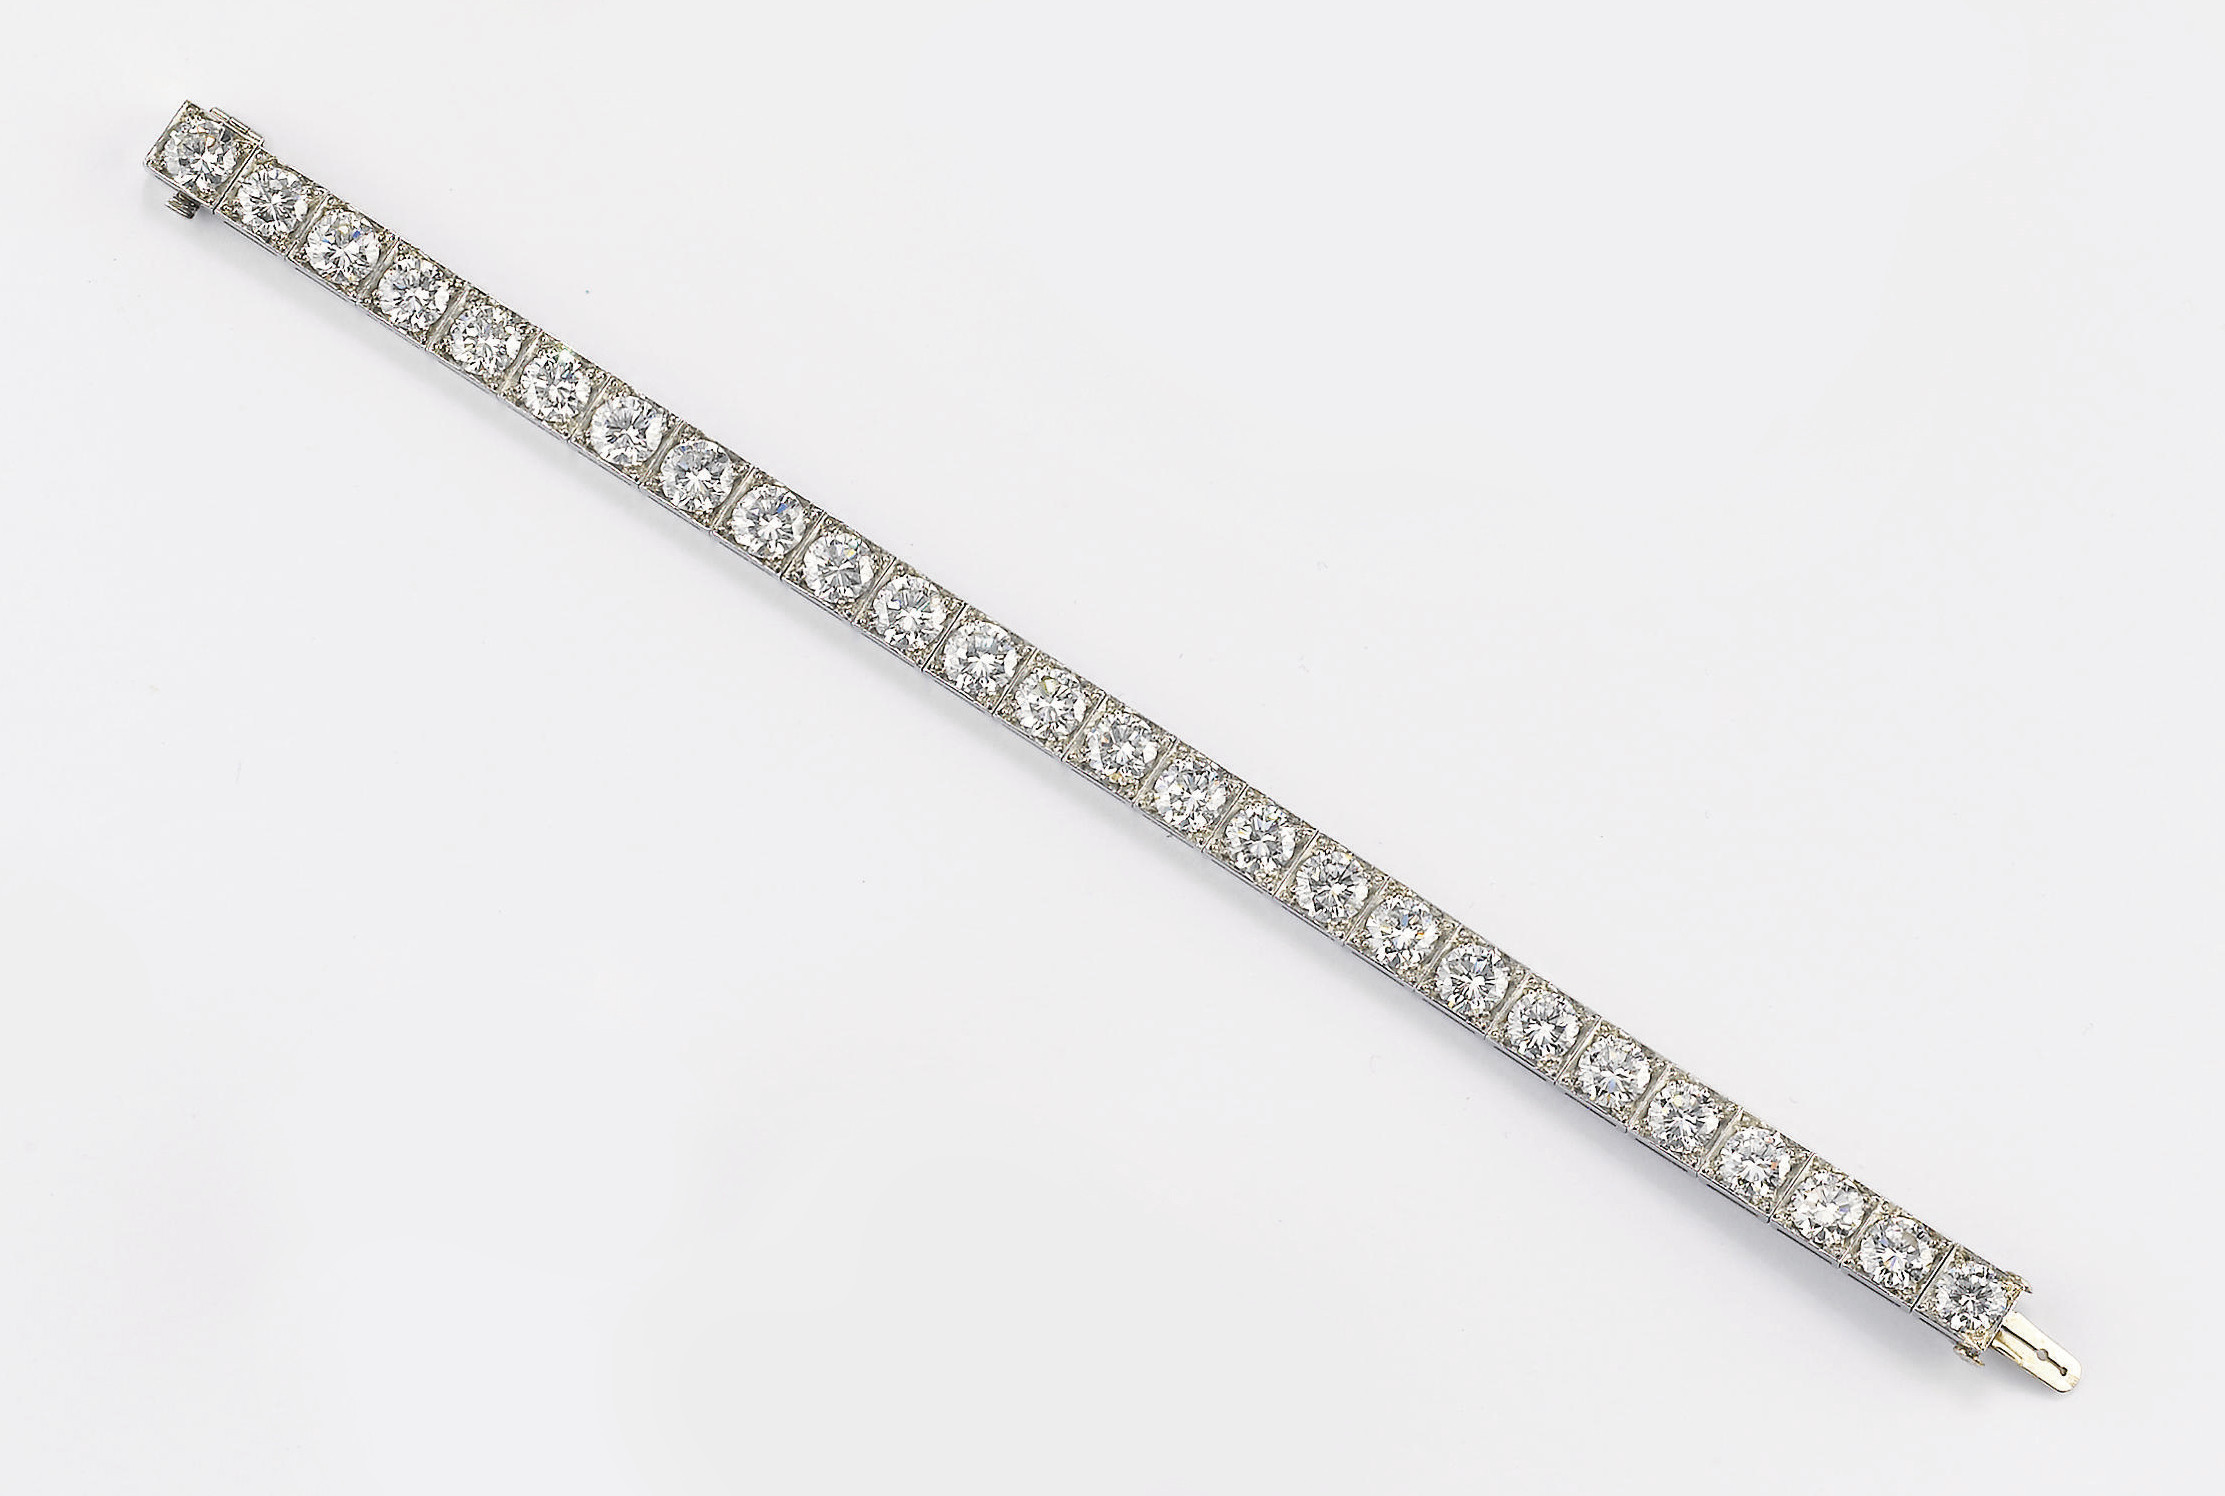 BRACCIALE IN DIAMANTI